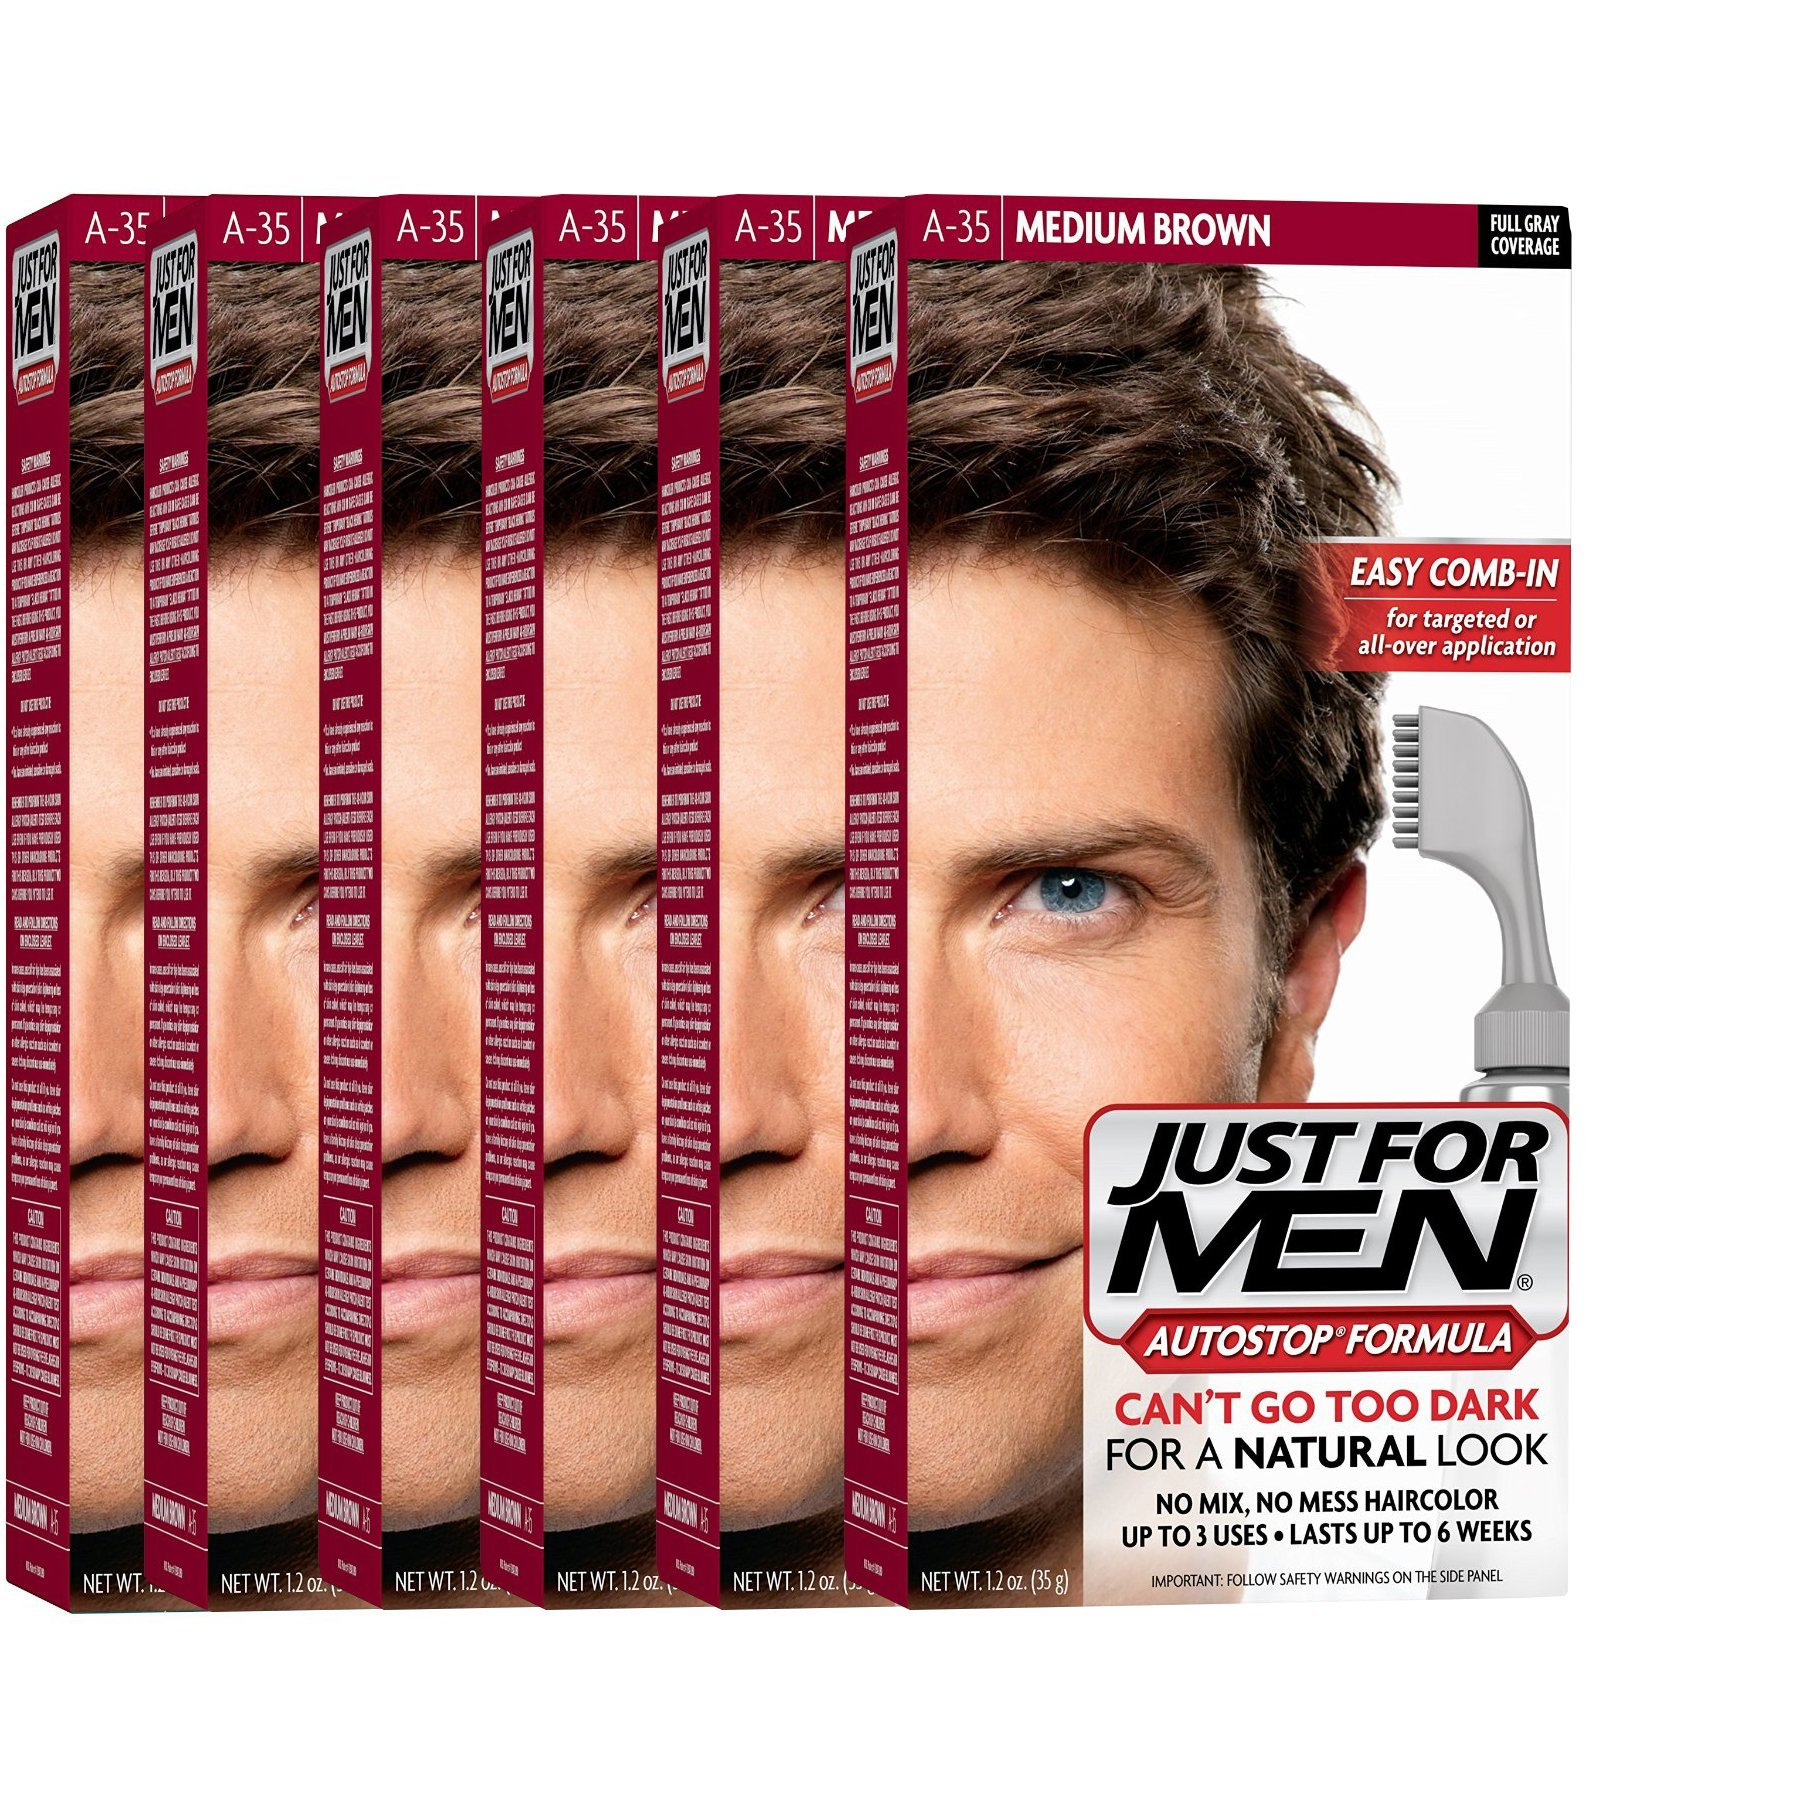 Just For Men AutoStop Men's Hair Color (6, Medium Brown) by Just for Men (Image #1)